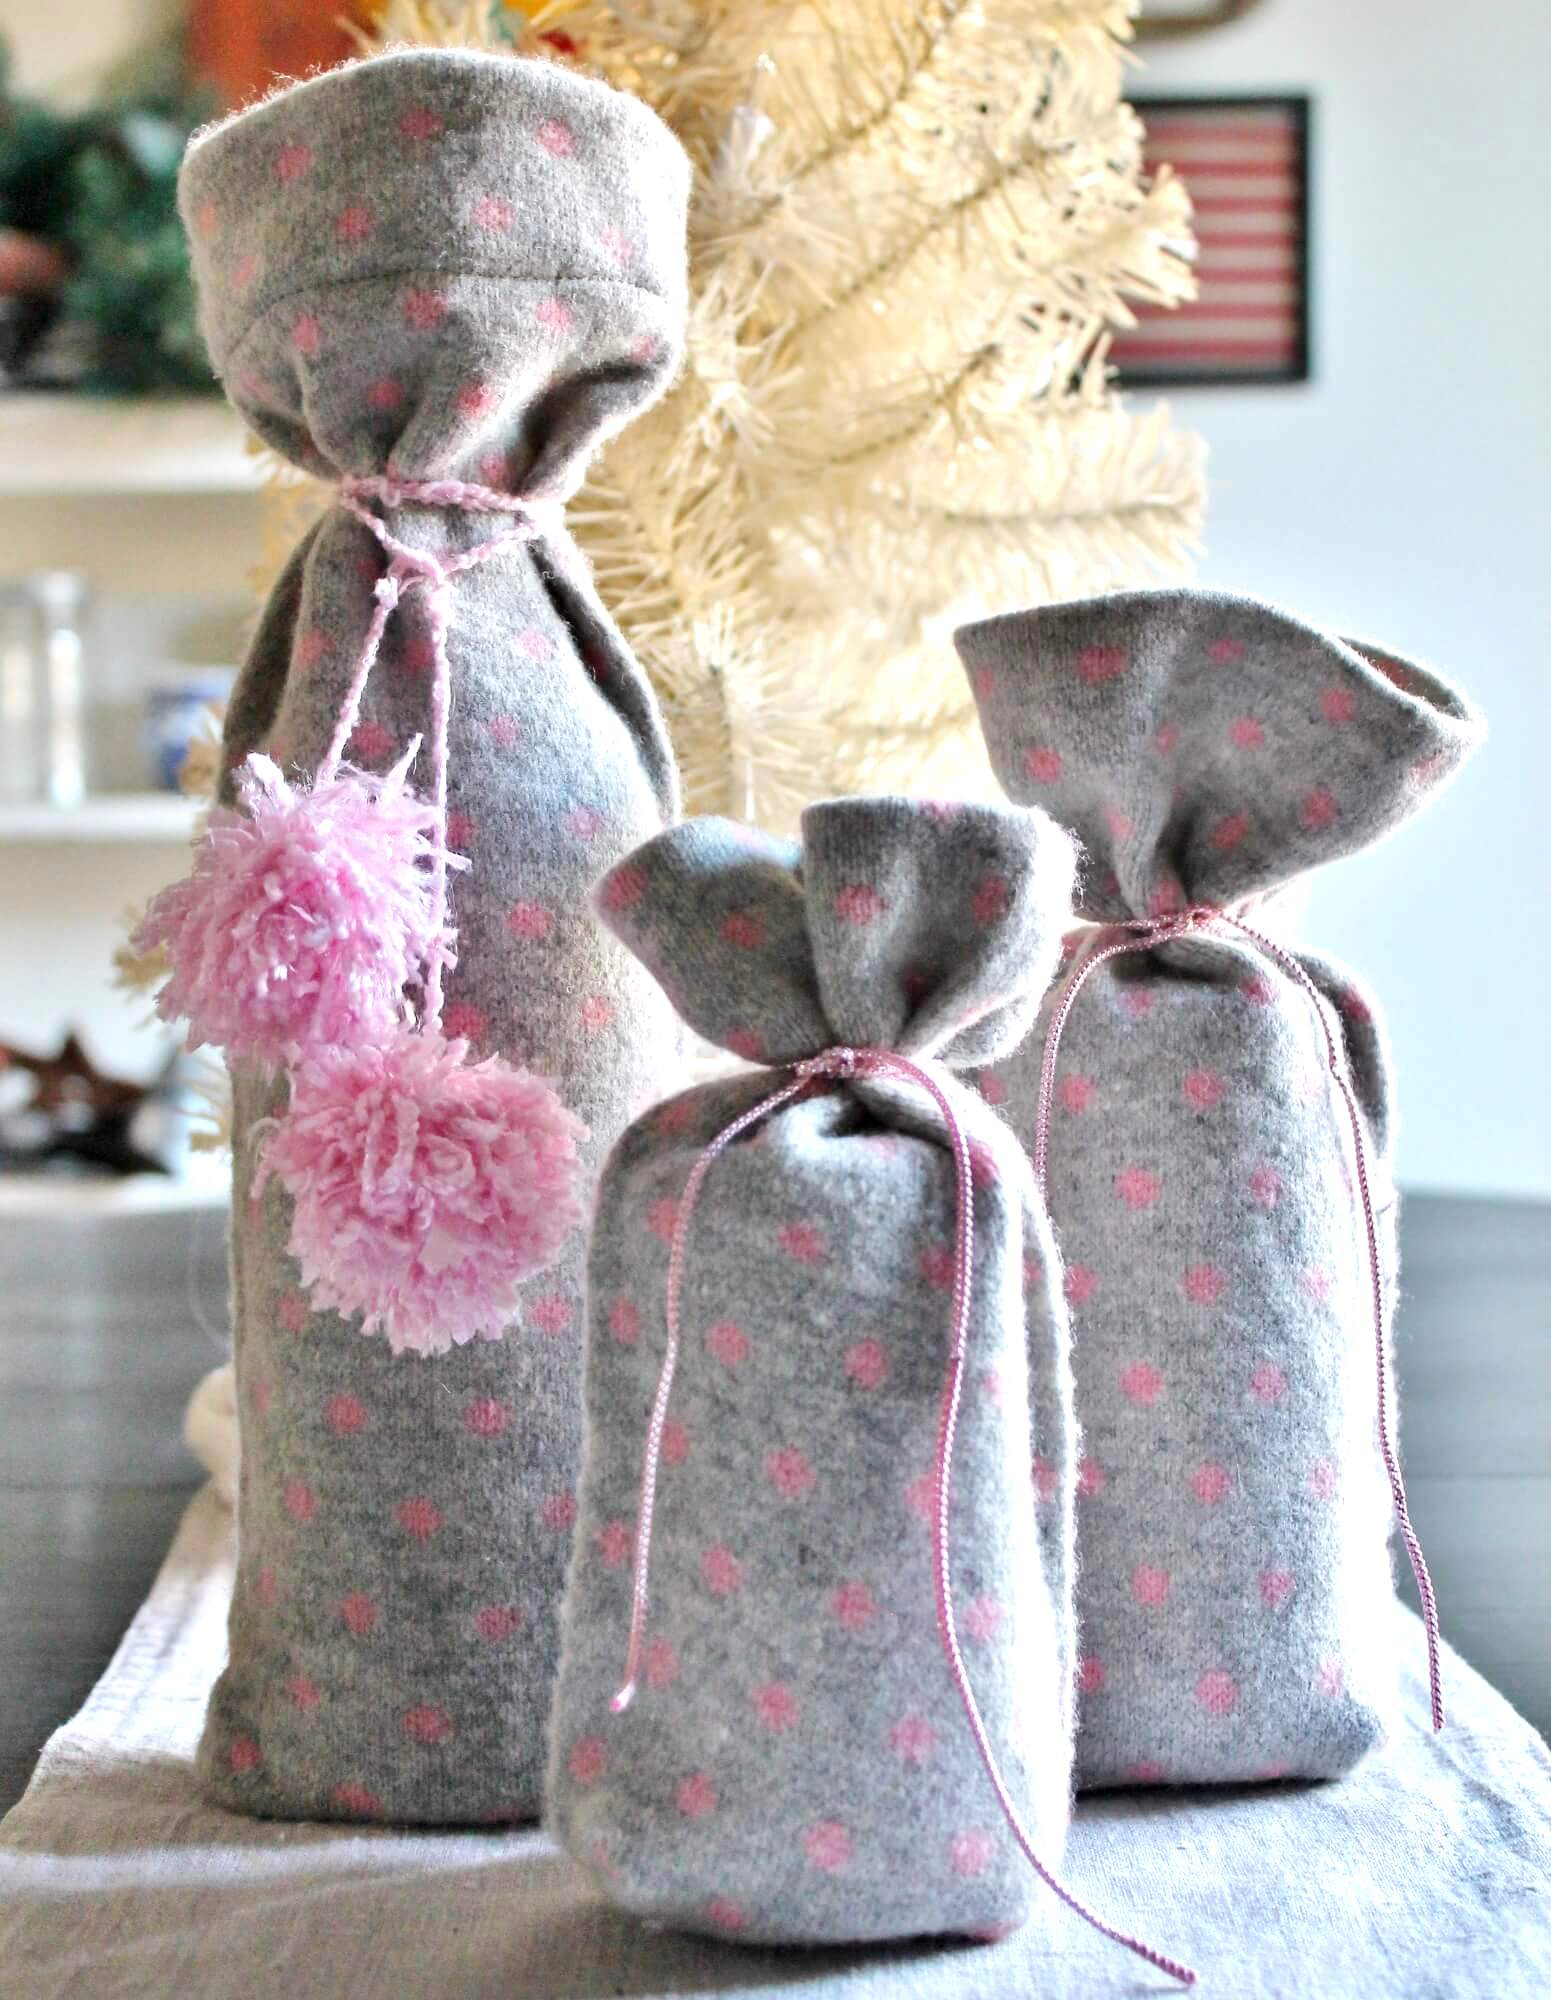 Thrifted scarf gift wrap, by Adirondack Girl at Heart, featured on Funky Junk Interiors